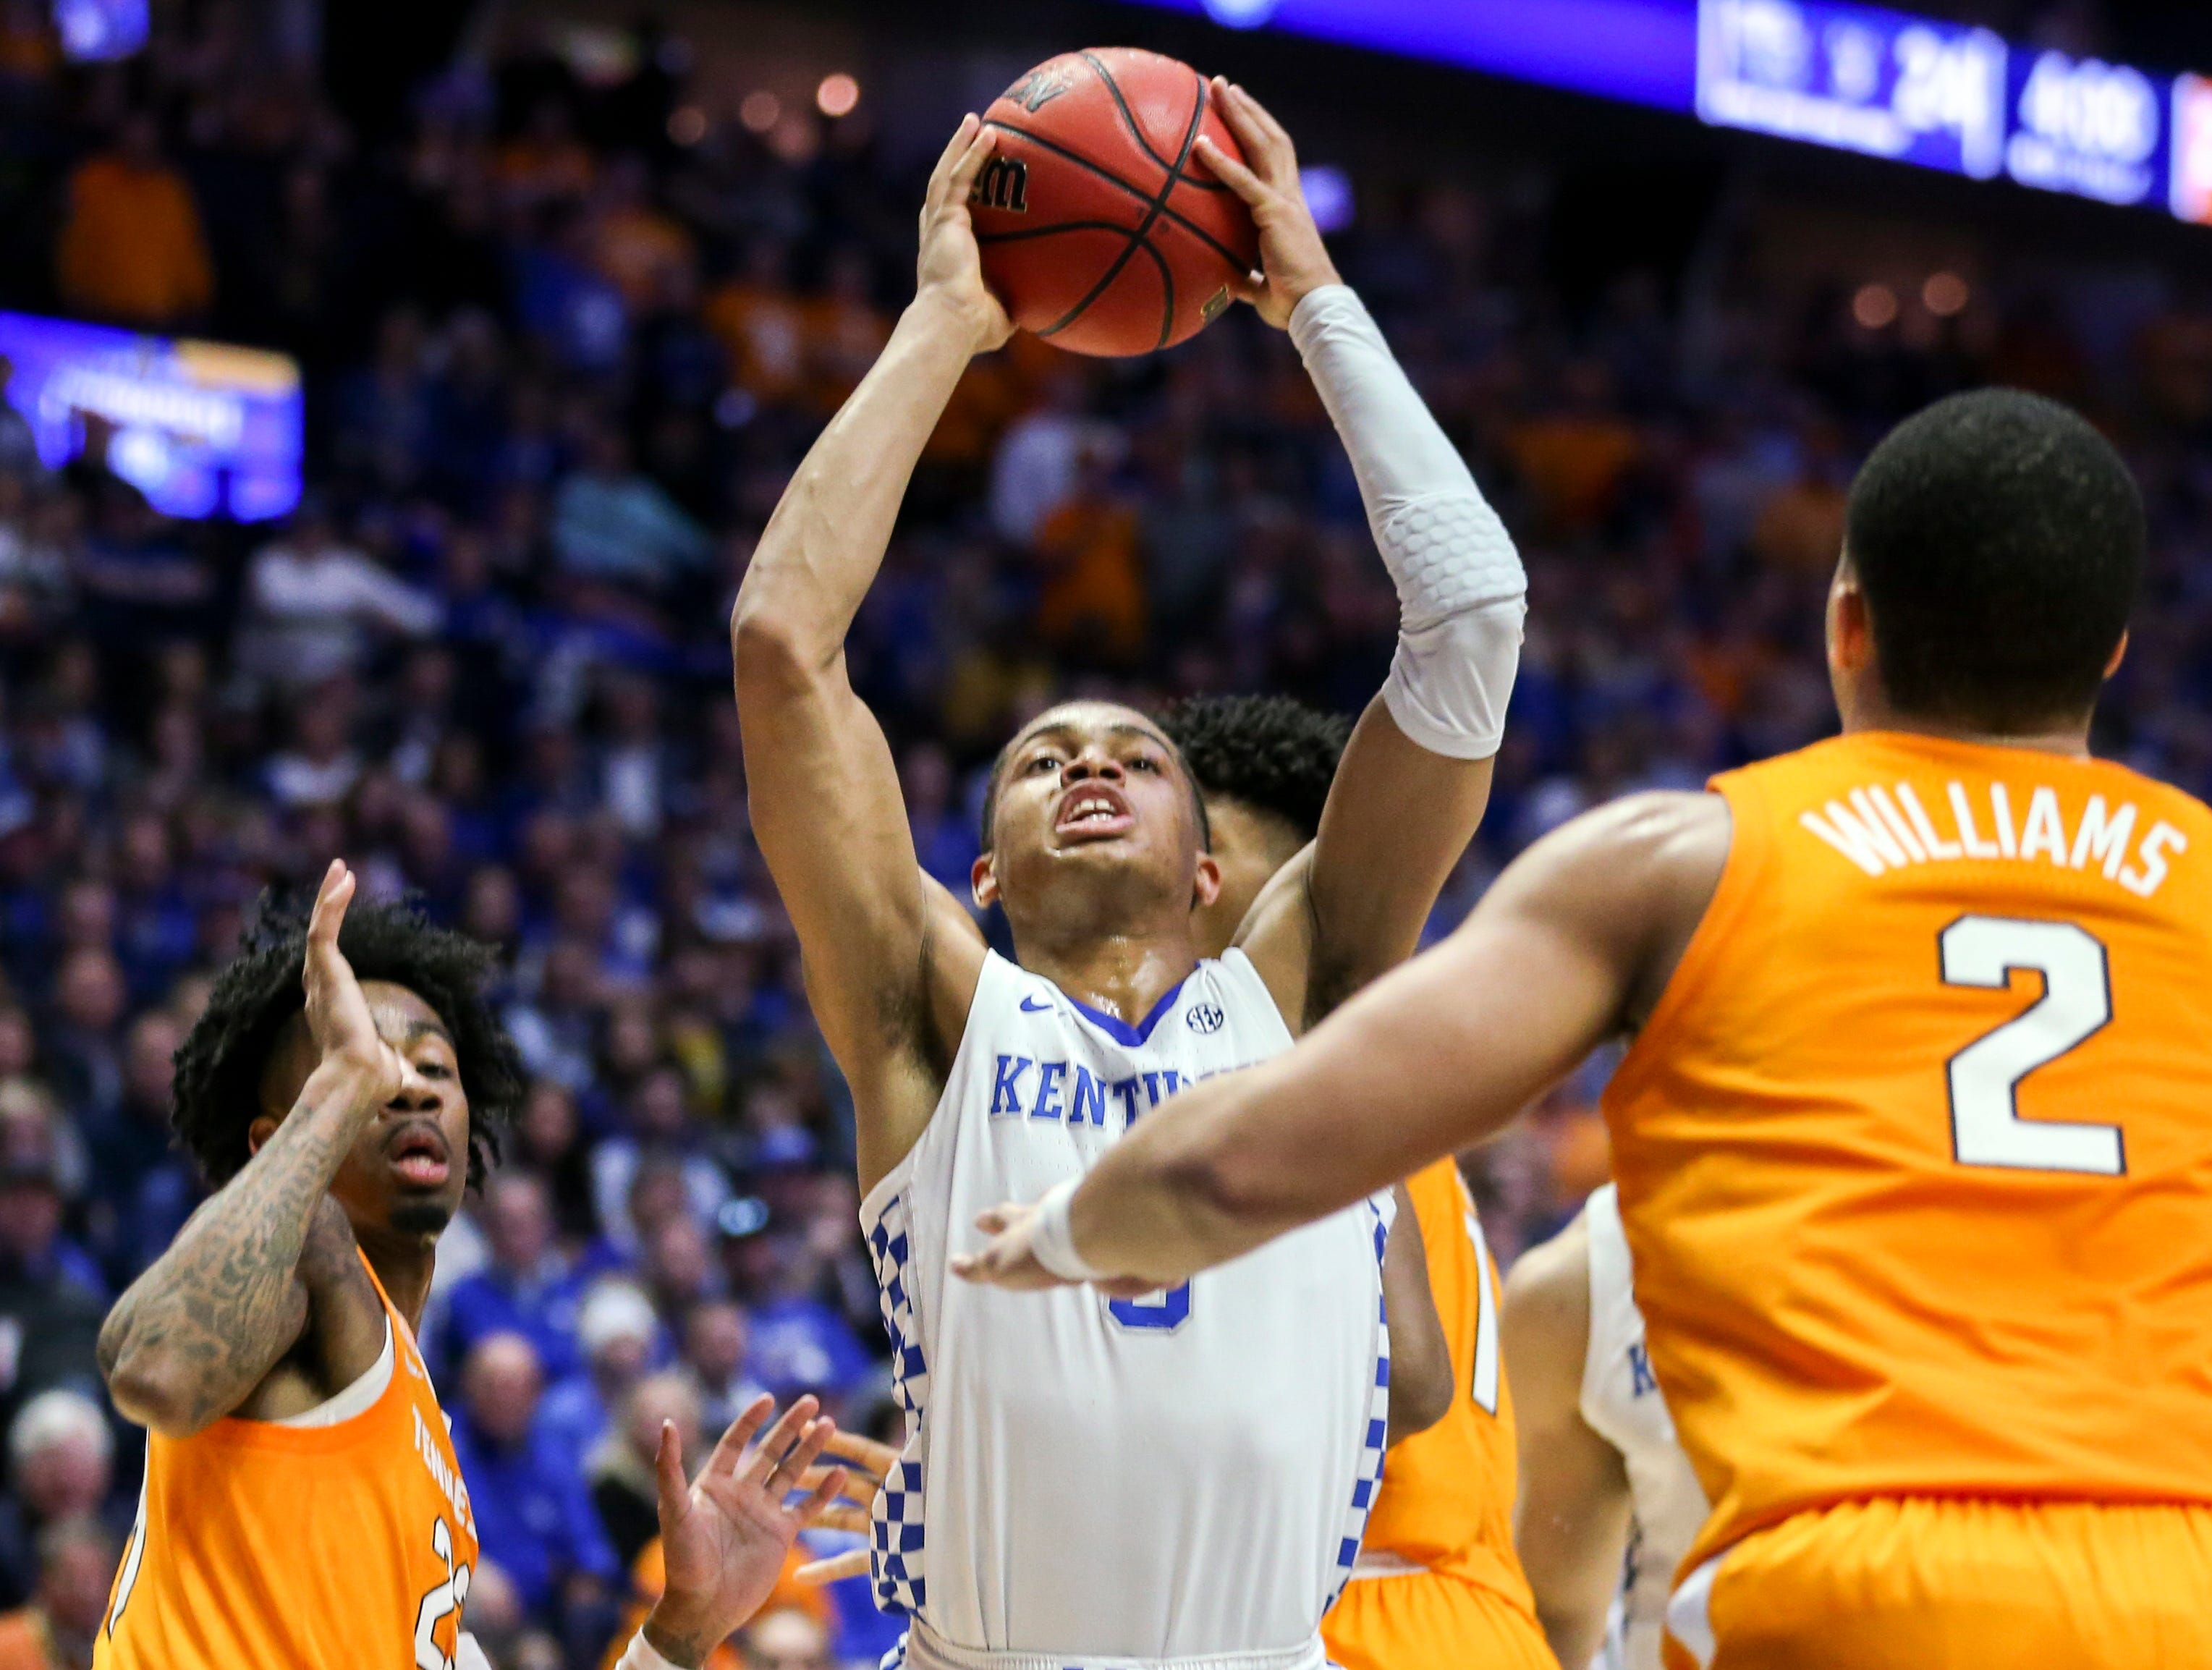 Kentucky guard Keldon Johnson (3) looks for an opening against Tennessee during the first half of the SEC Men's Basketball Tournament semifinal game at Bridgestone Arena in Nashville, Tenn., Saturday, March 16, 2019.